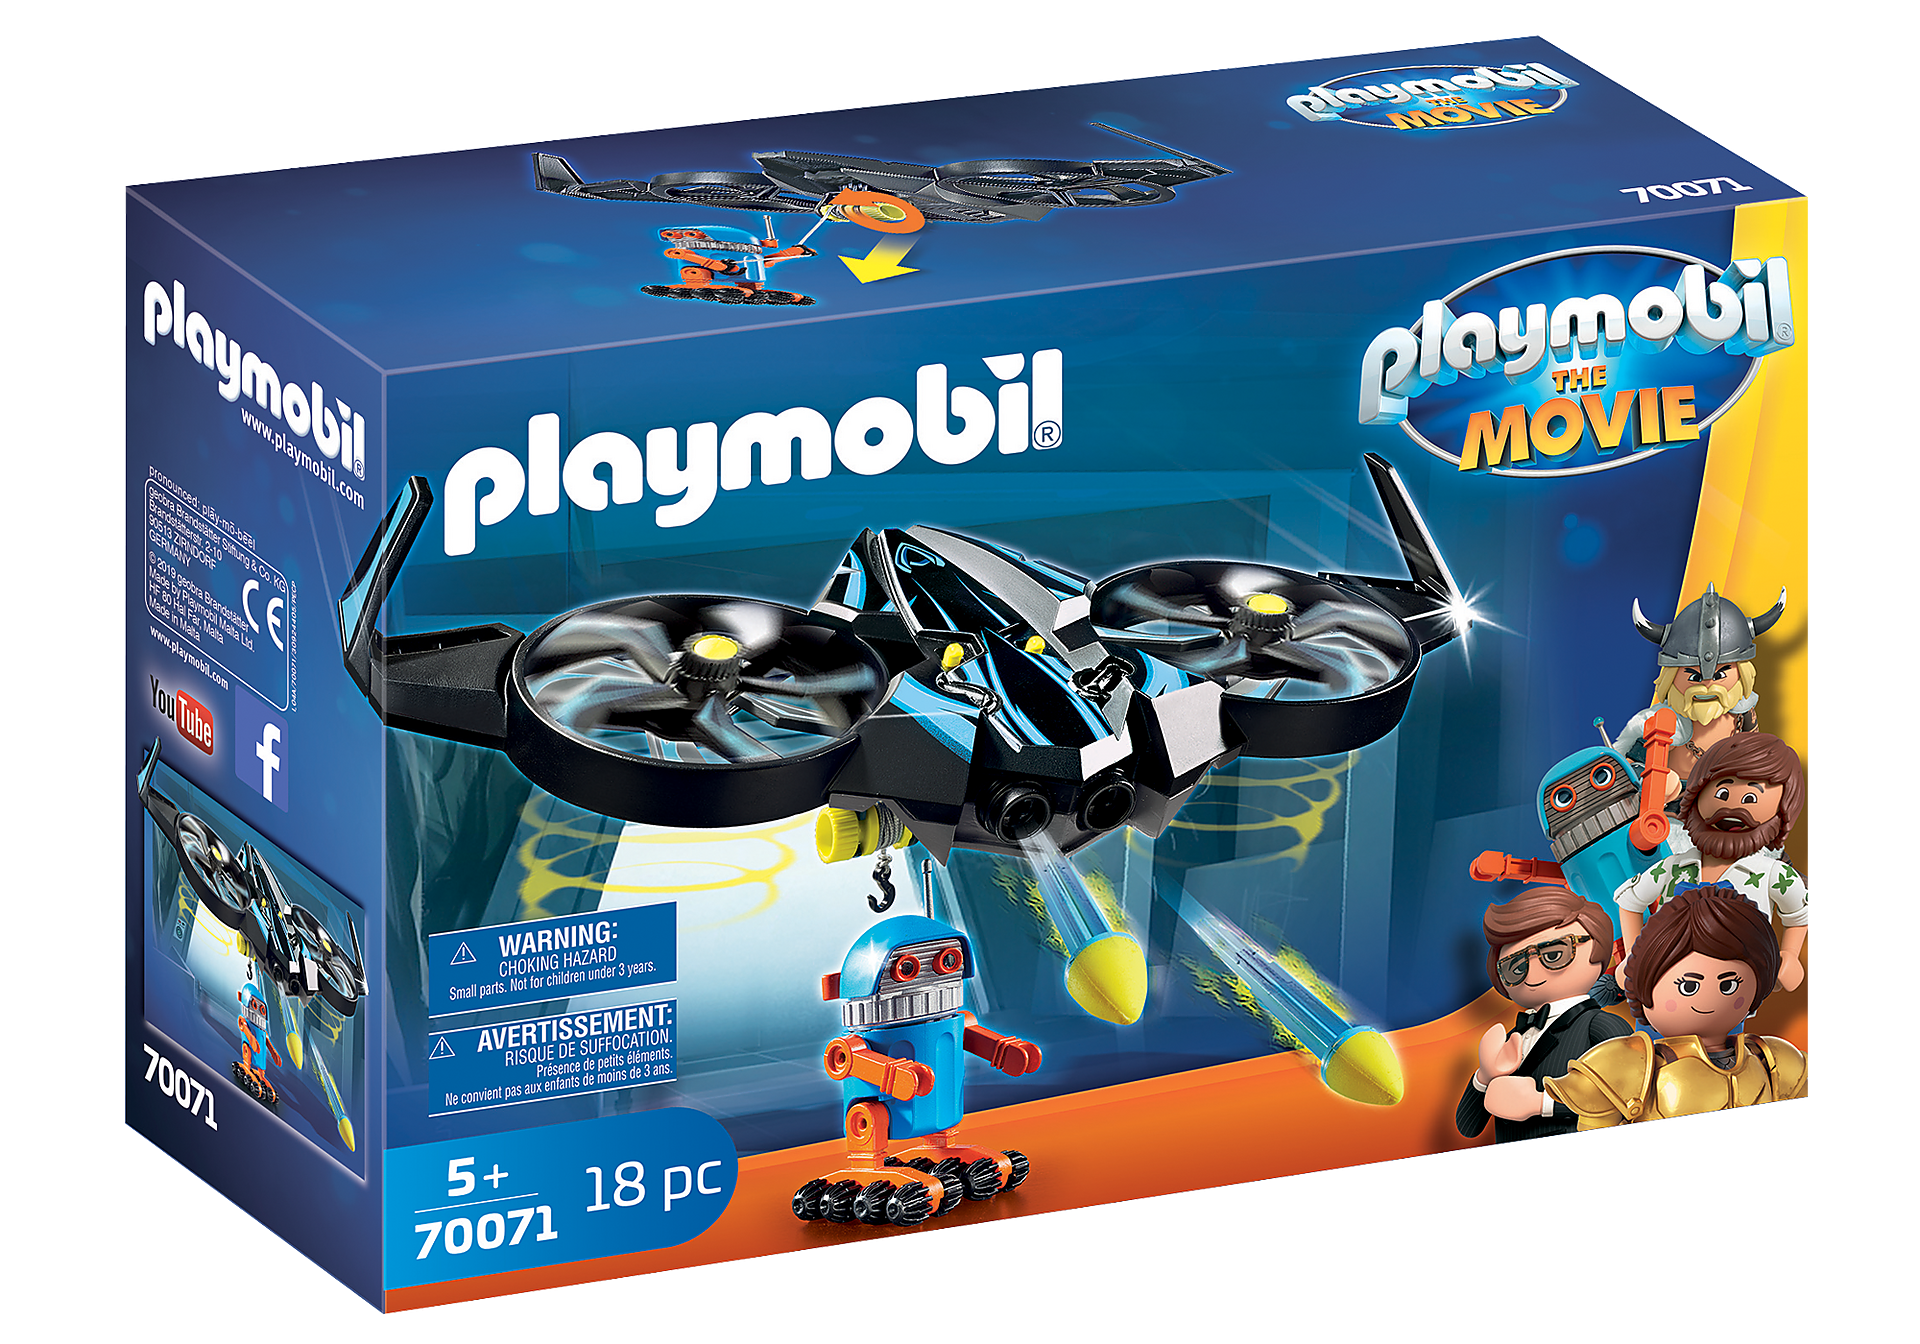 70071 PLAYMOBIL:THE MOVIE Robotitron with Drone zoom image2